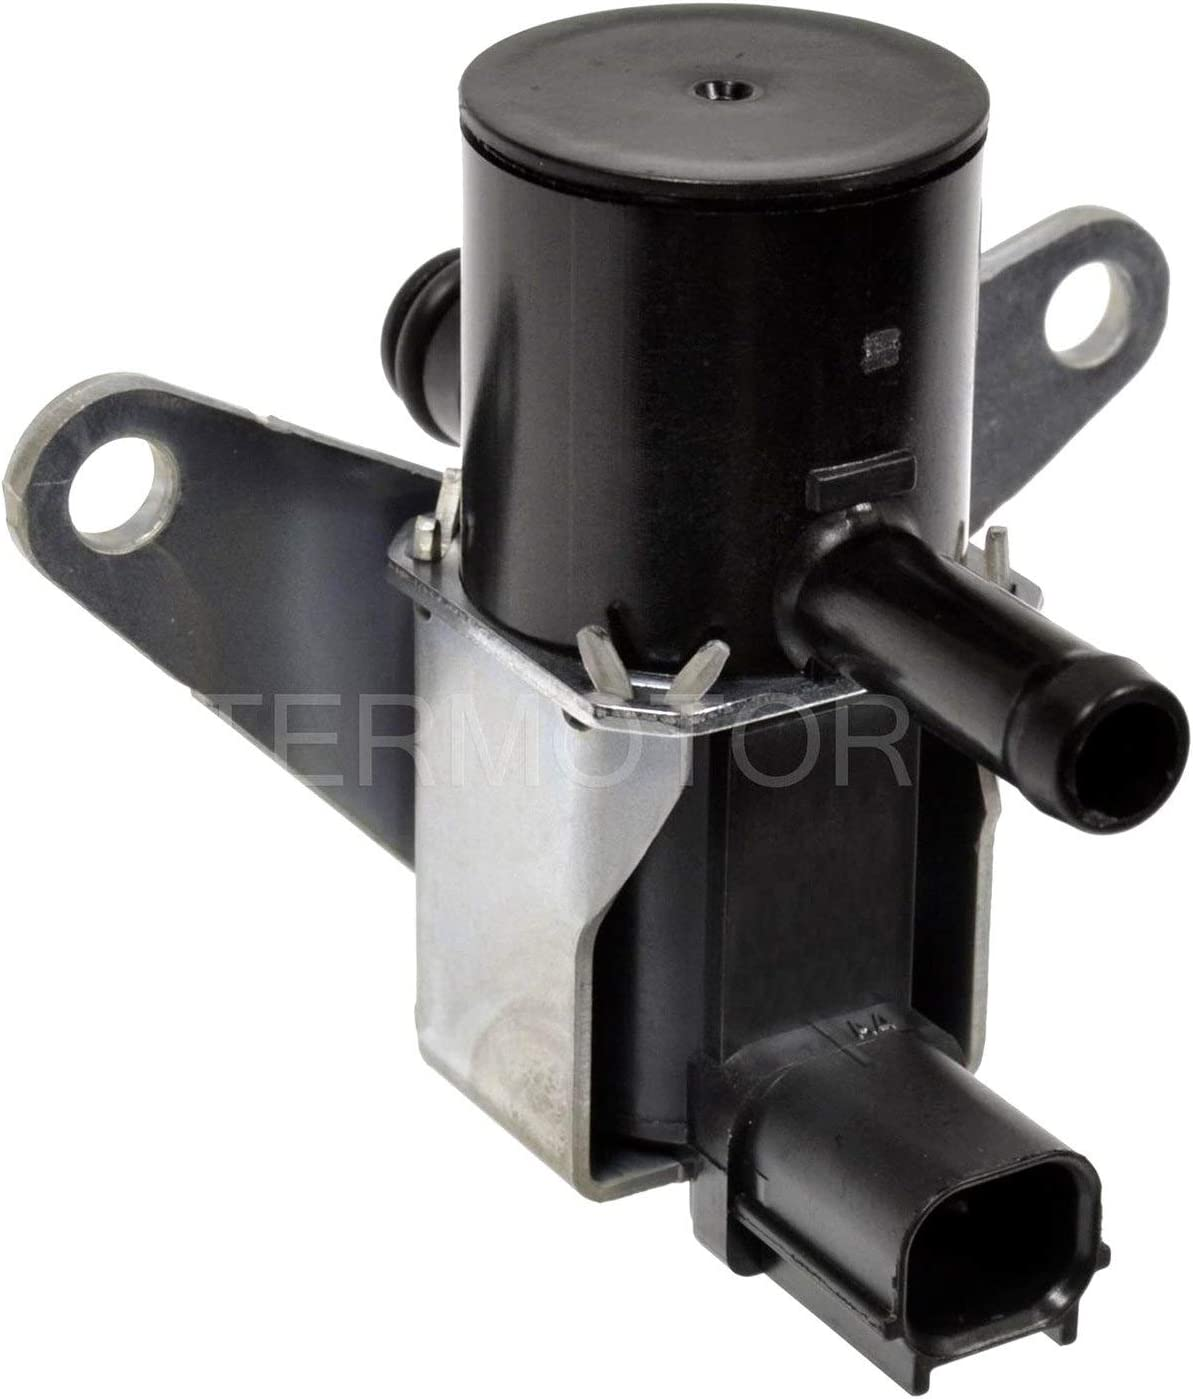 Trust Standard Motor Products CP690 Purge Free Shipping New Solenoid Canister